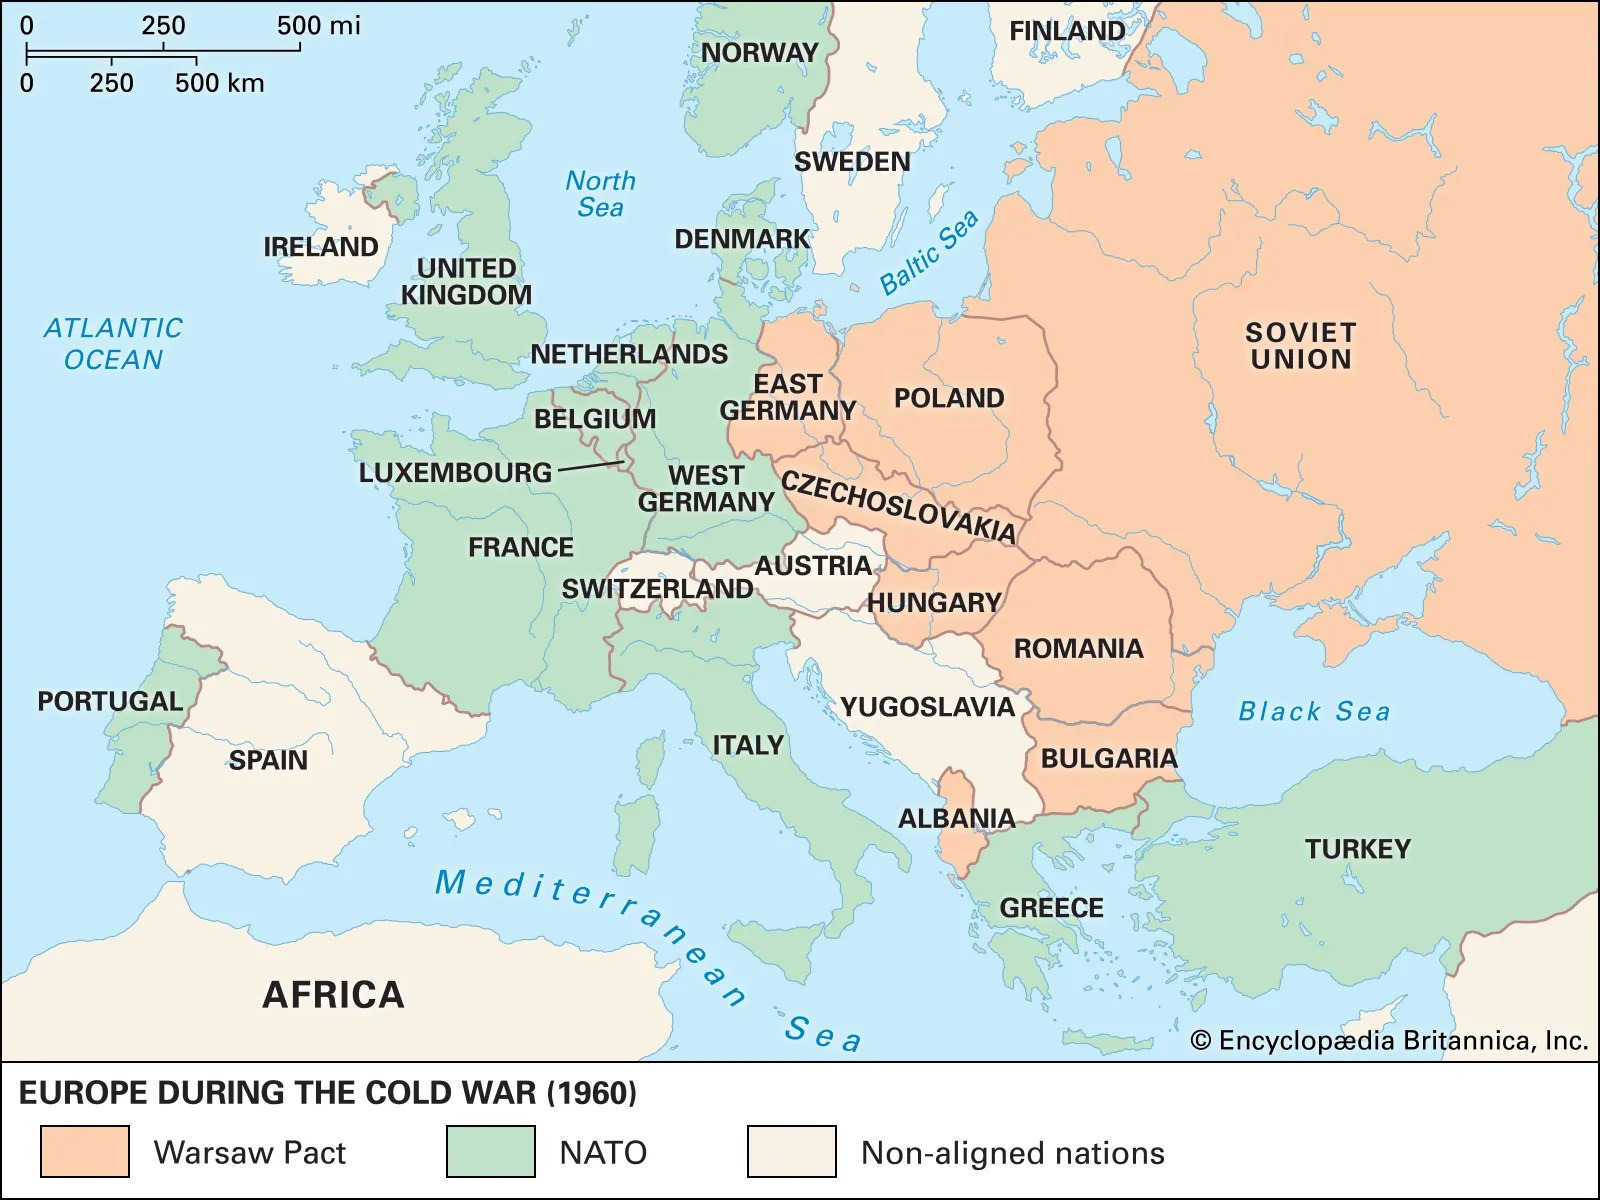 The Iron Curtain In Europe Refers To Openstudy